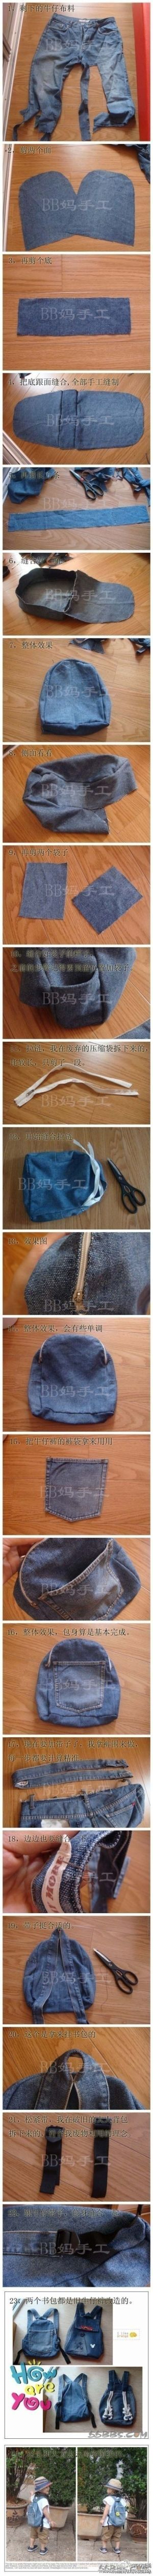 jean backpack DIY by bonniemae by isabelle07